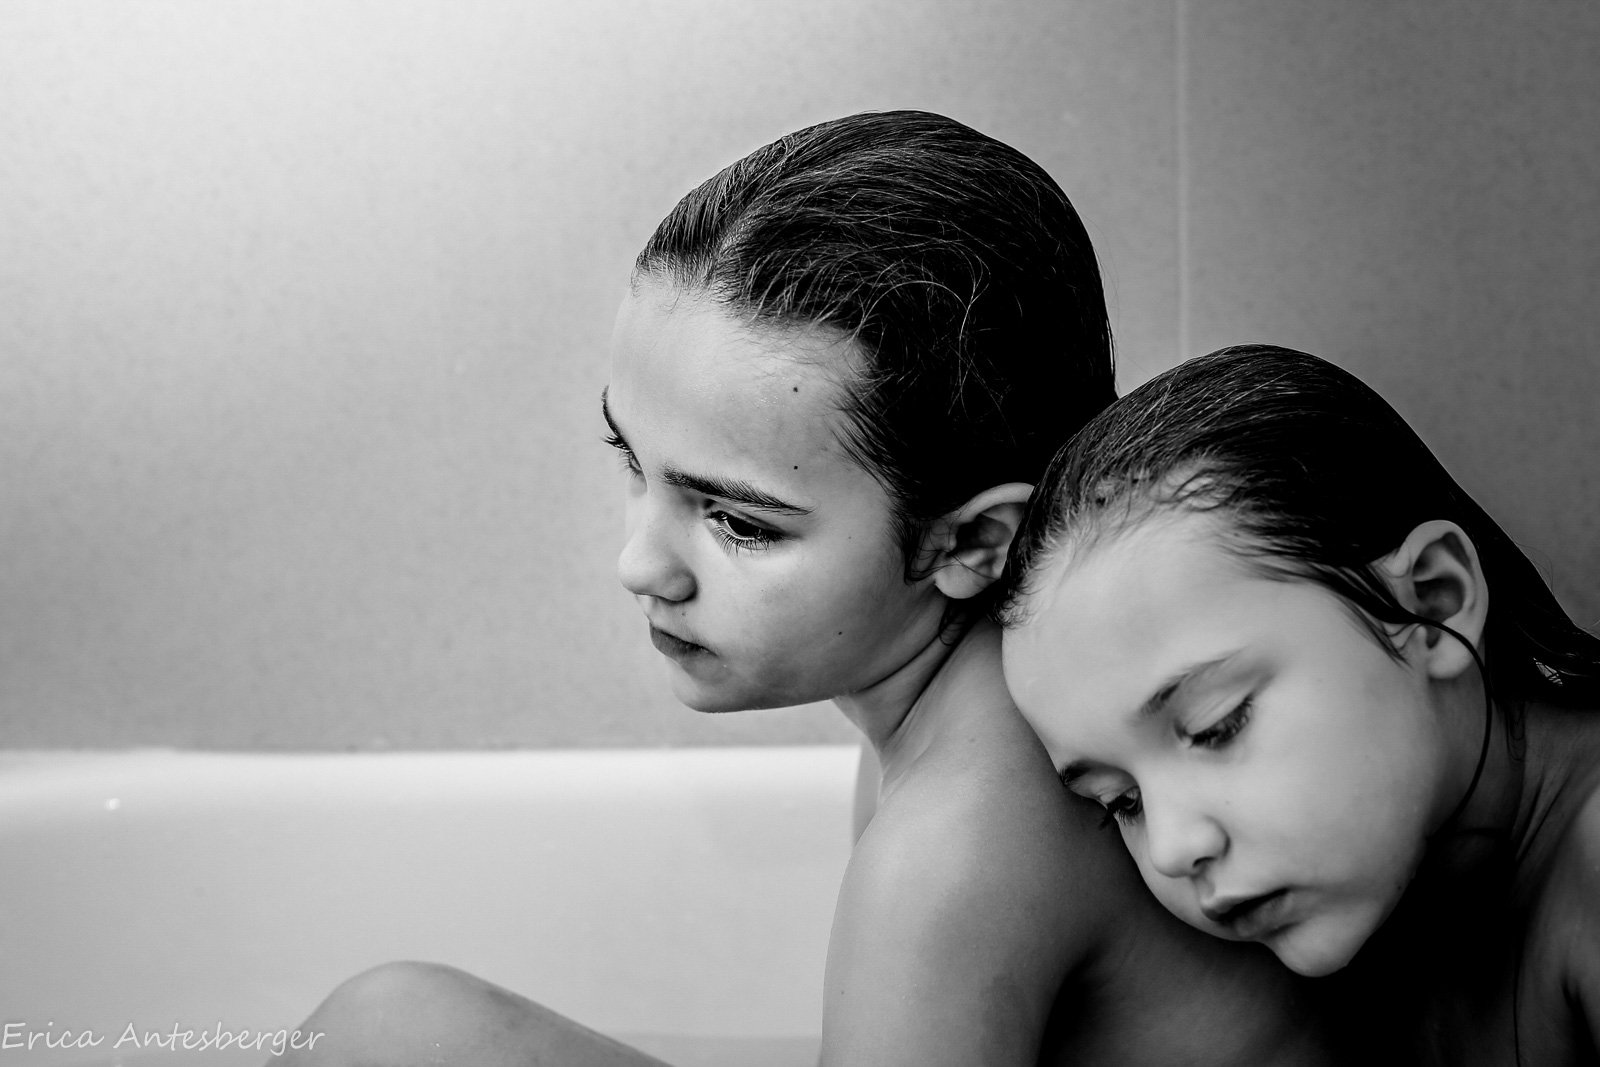 Erica Antesberger_ericaantesberger clickin moms march forum photo contest girls in bathtub black and white